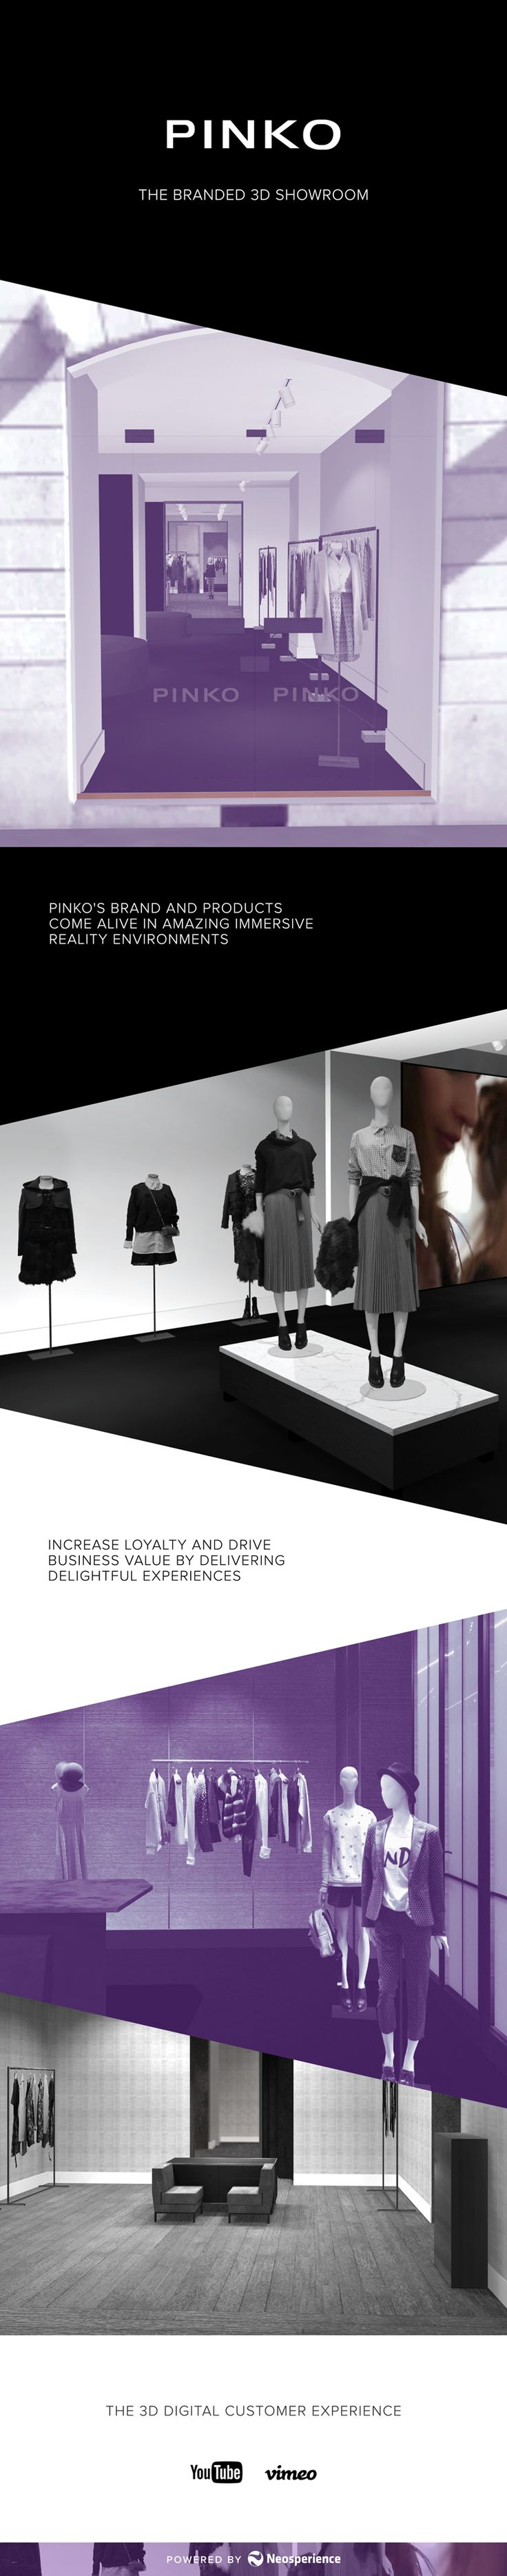 Pinko's brand and products come alive in a branded 3D showroom, to increase loyalty and drive business value.